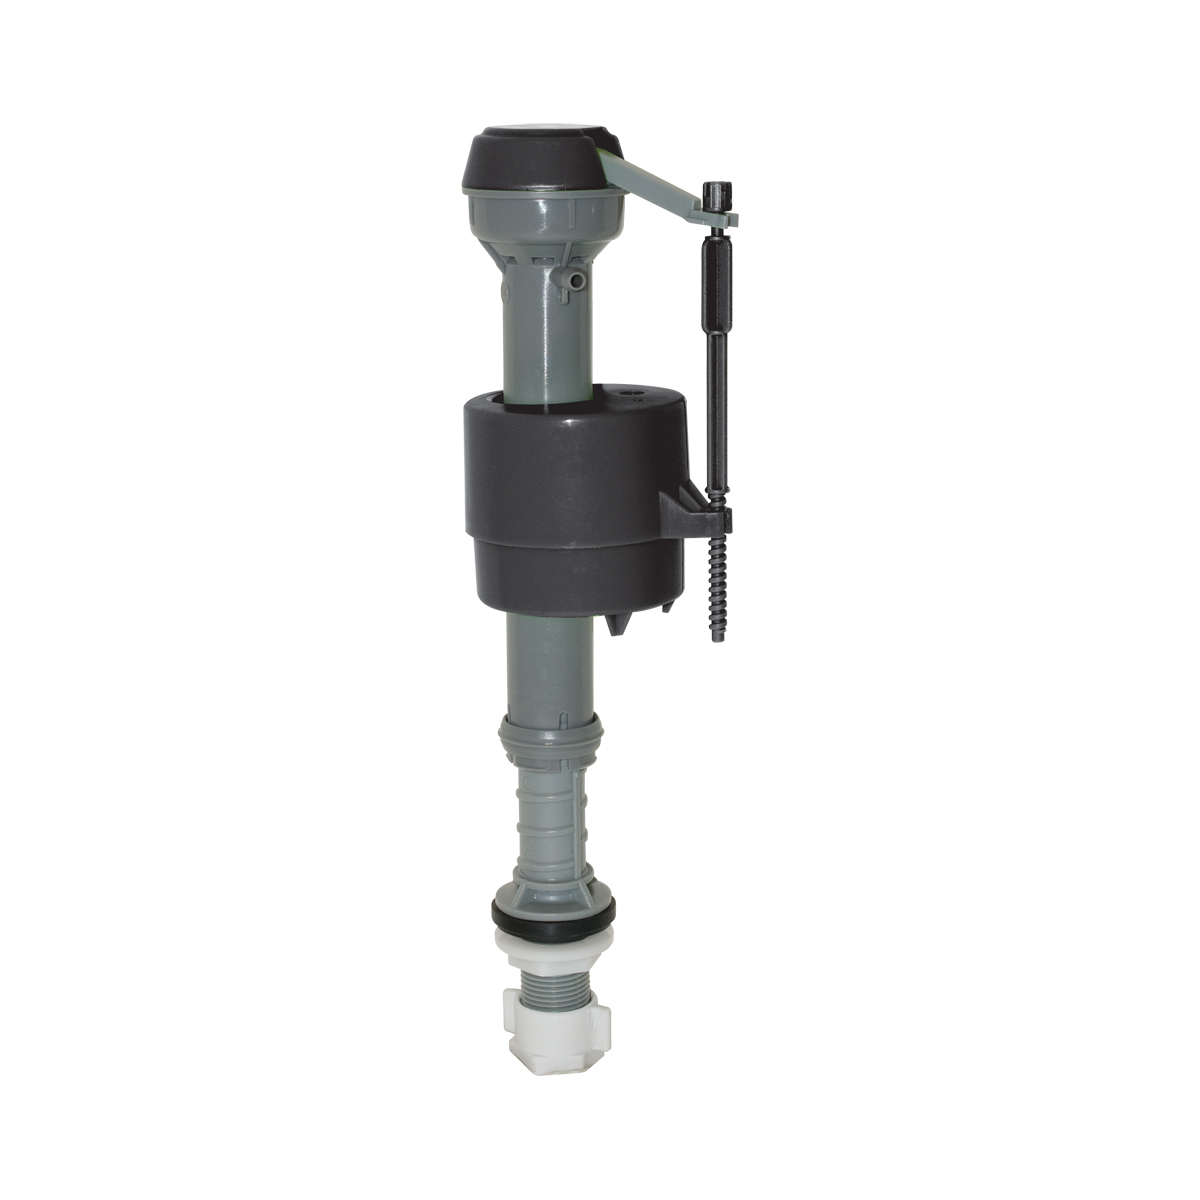 "8"" - 13"" Adjustable Anti-Siphon Fill Valve"